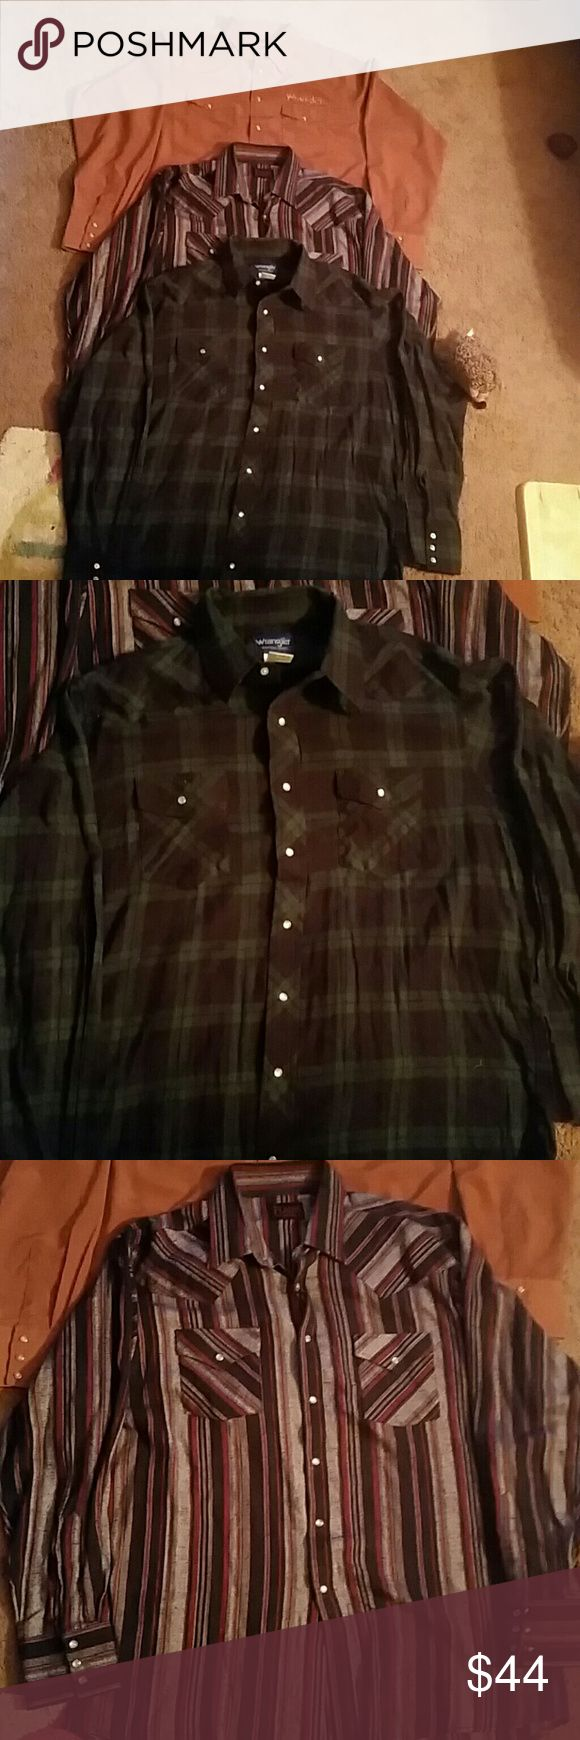 Starting a men's X large long sleeve shirts Men's lot of 3 long sleeve Pearl snap shirts 2 or flannel the tan one is polyester but it feels like Silk the other two are flannel the two flannel ones have been lightly used but the brown silk one has never been used 2 by Wrangler and 1 is by Plains great for this winter oh one of the flannel ones is a tall which means it's really long the blue and green flannel one 2 wrangler 1 plains Shirts